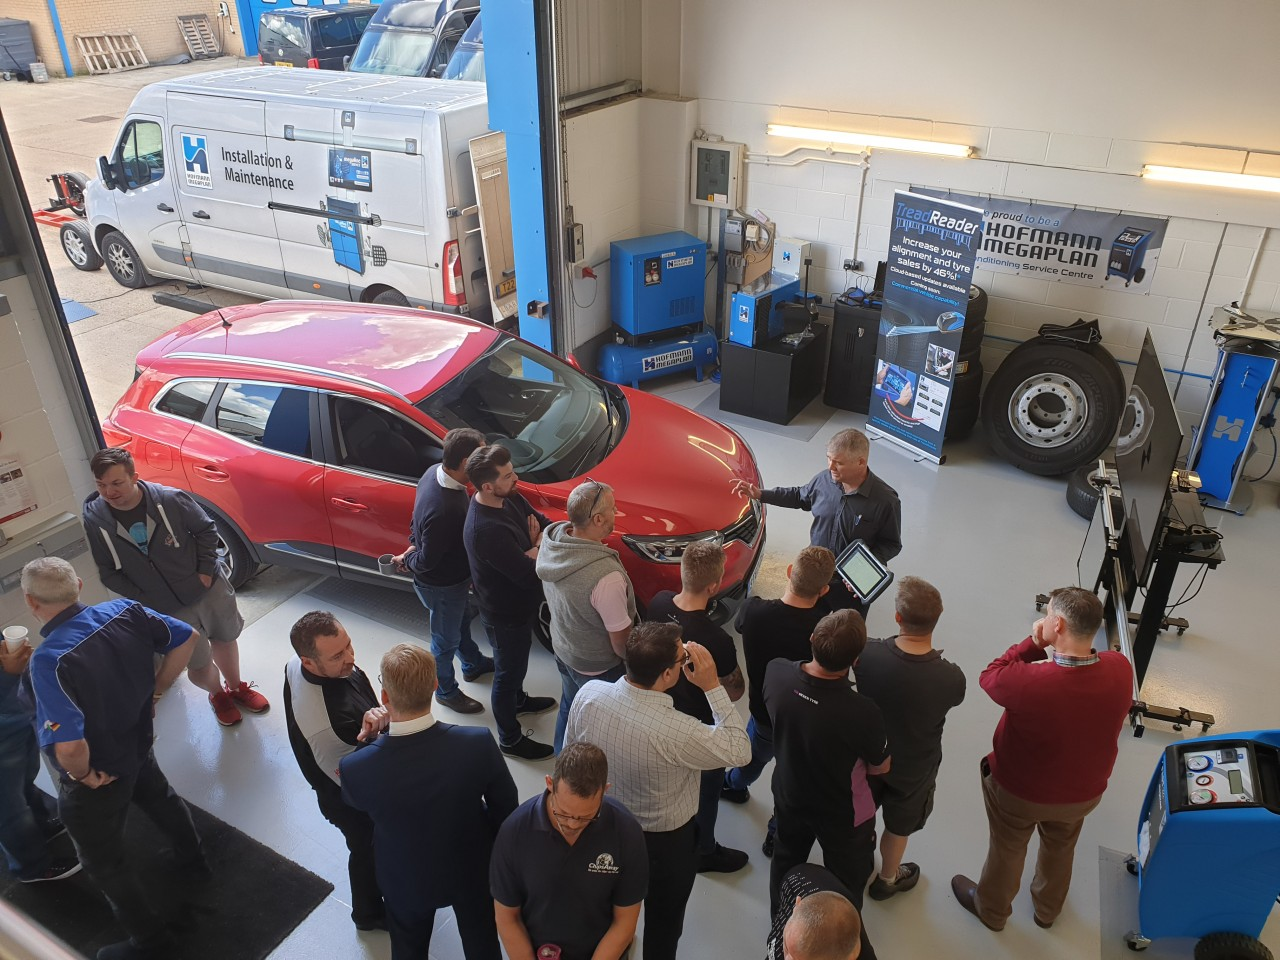 2019 ADAS Open Day at Hofmann Megaplan Showroom